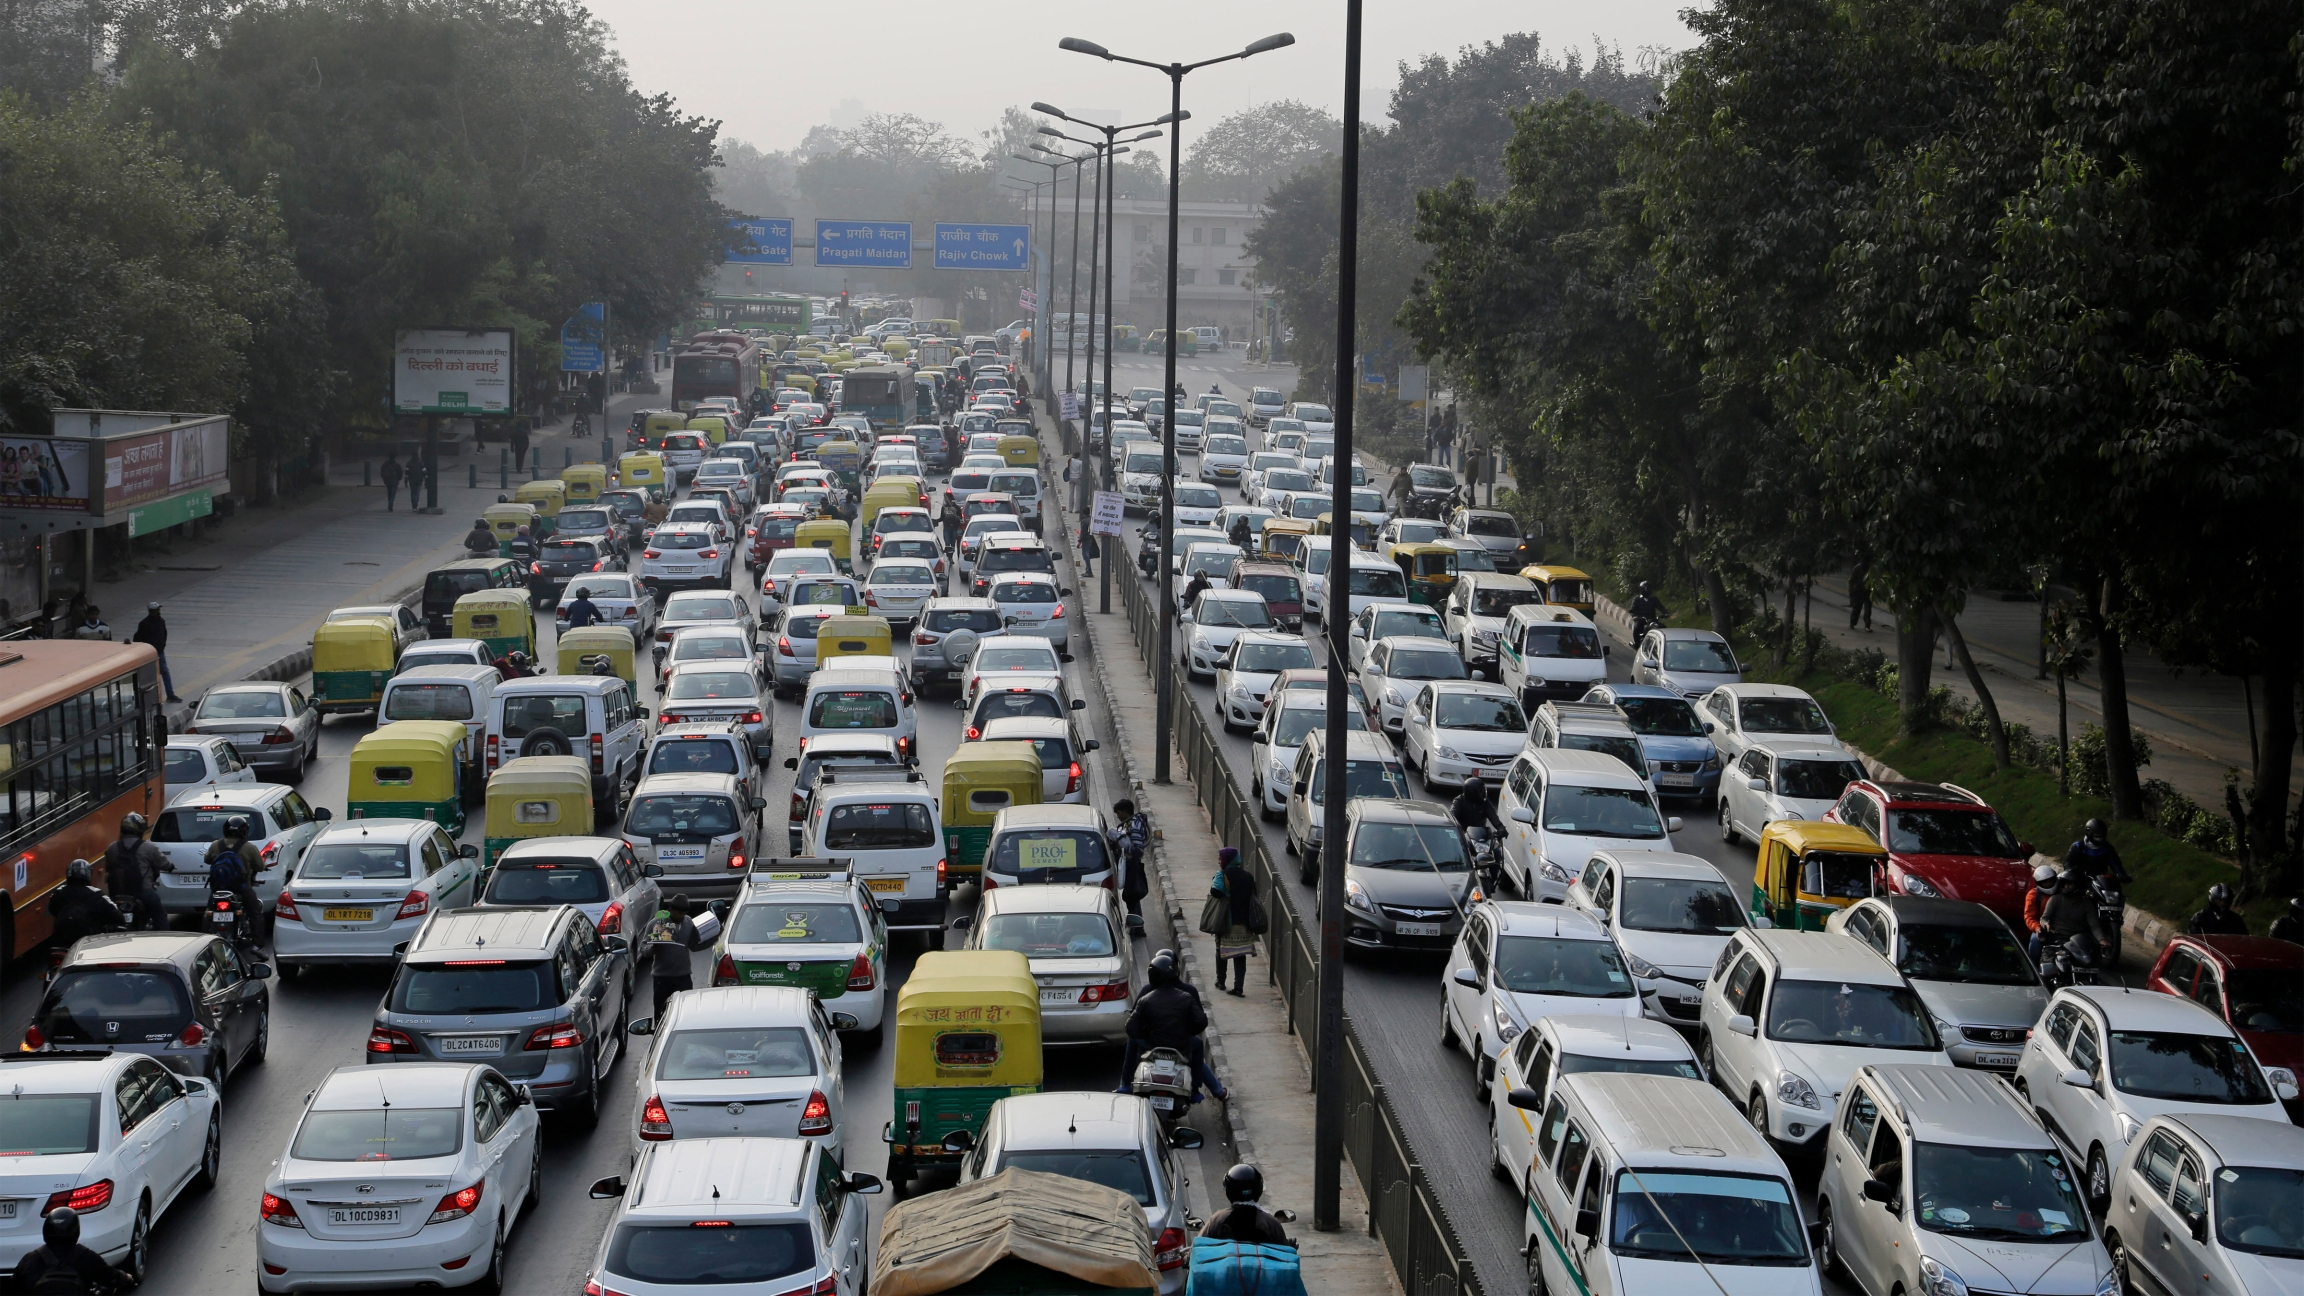 Vehicles move slowly through a traffic intersection after the end of a two-week experiment to reduce the number of cars to fight pollution in in New Delhi, India